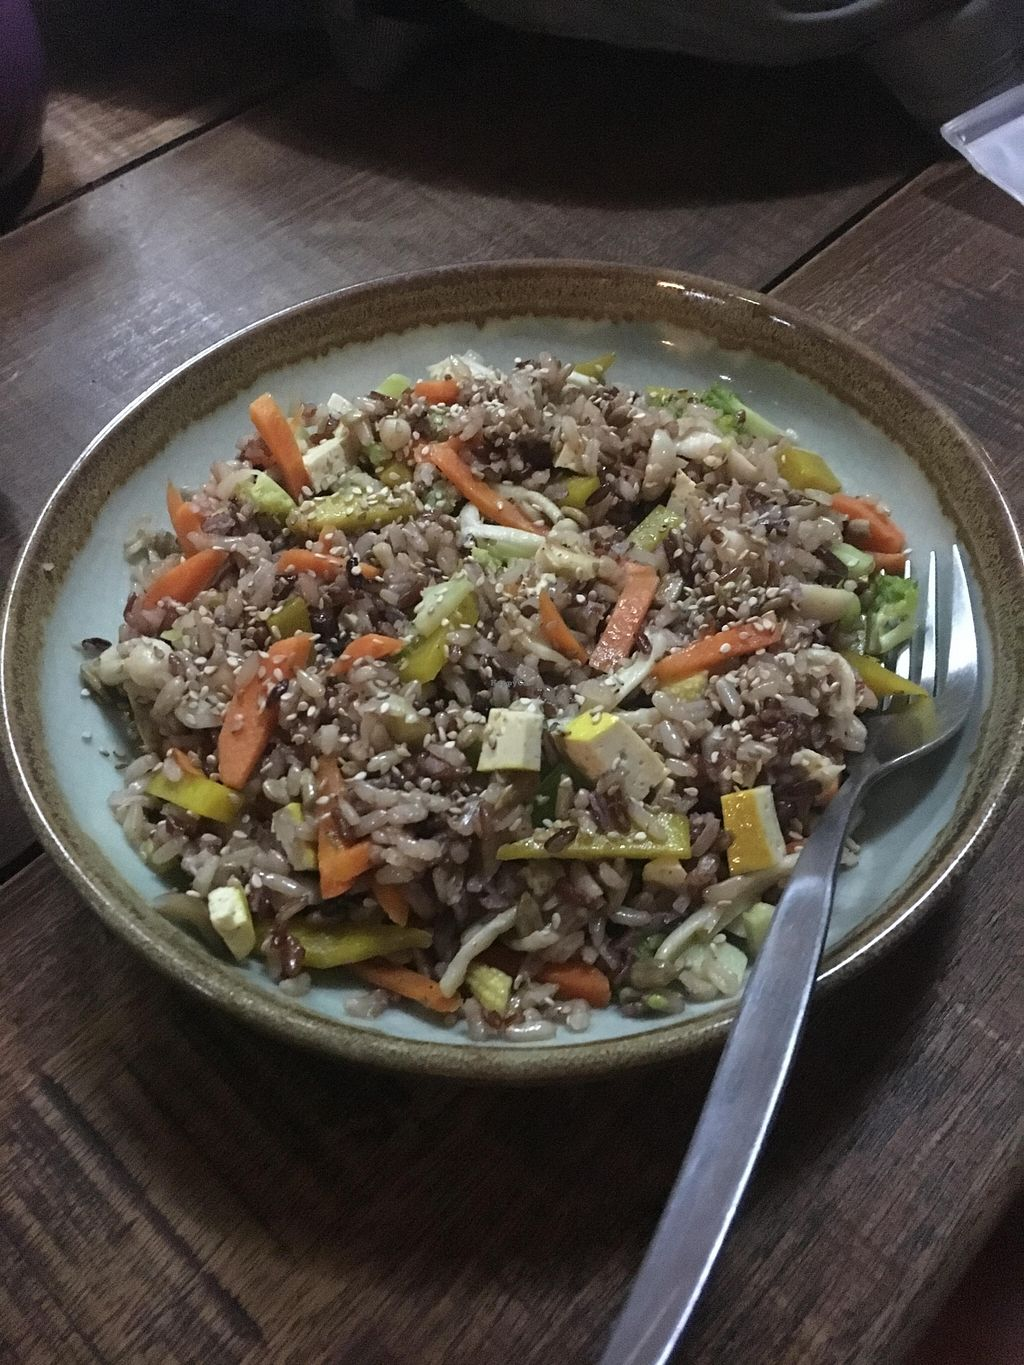 Photo of Akasha Home Restaurant  by lantern <br/>Stir fry brown rice w/beans,vegetables,nuts and sauce <br/> March 20, 2016  - <a href='/contact/abuse/image/53254/140696'>Report</a>